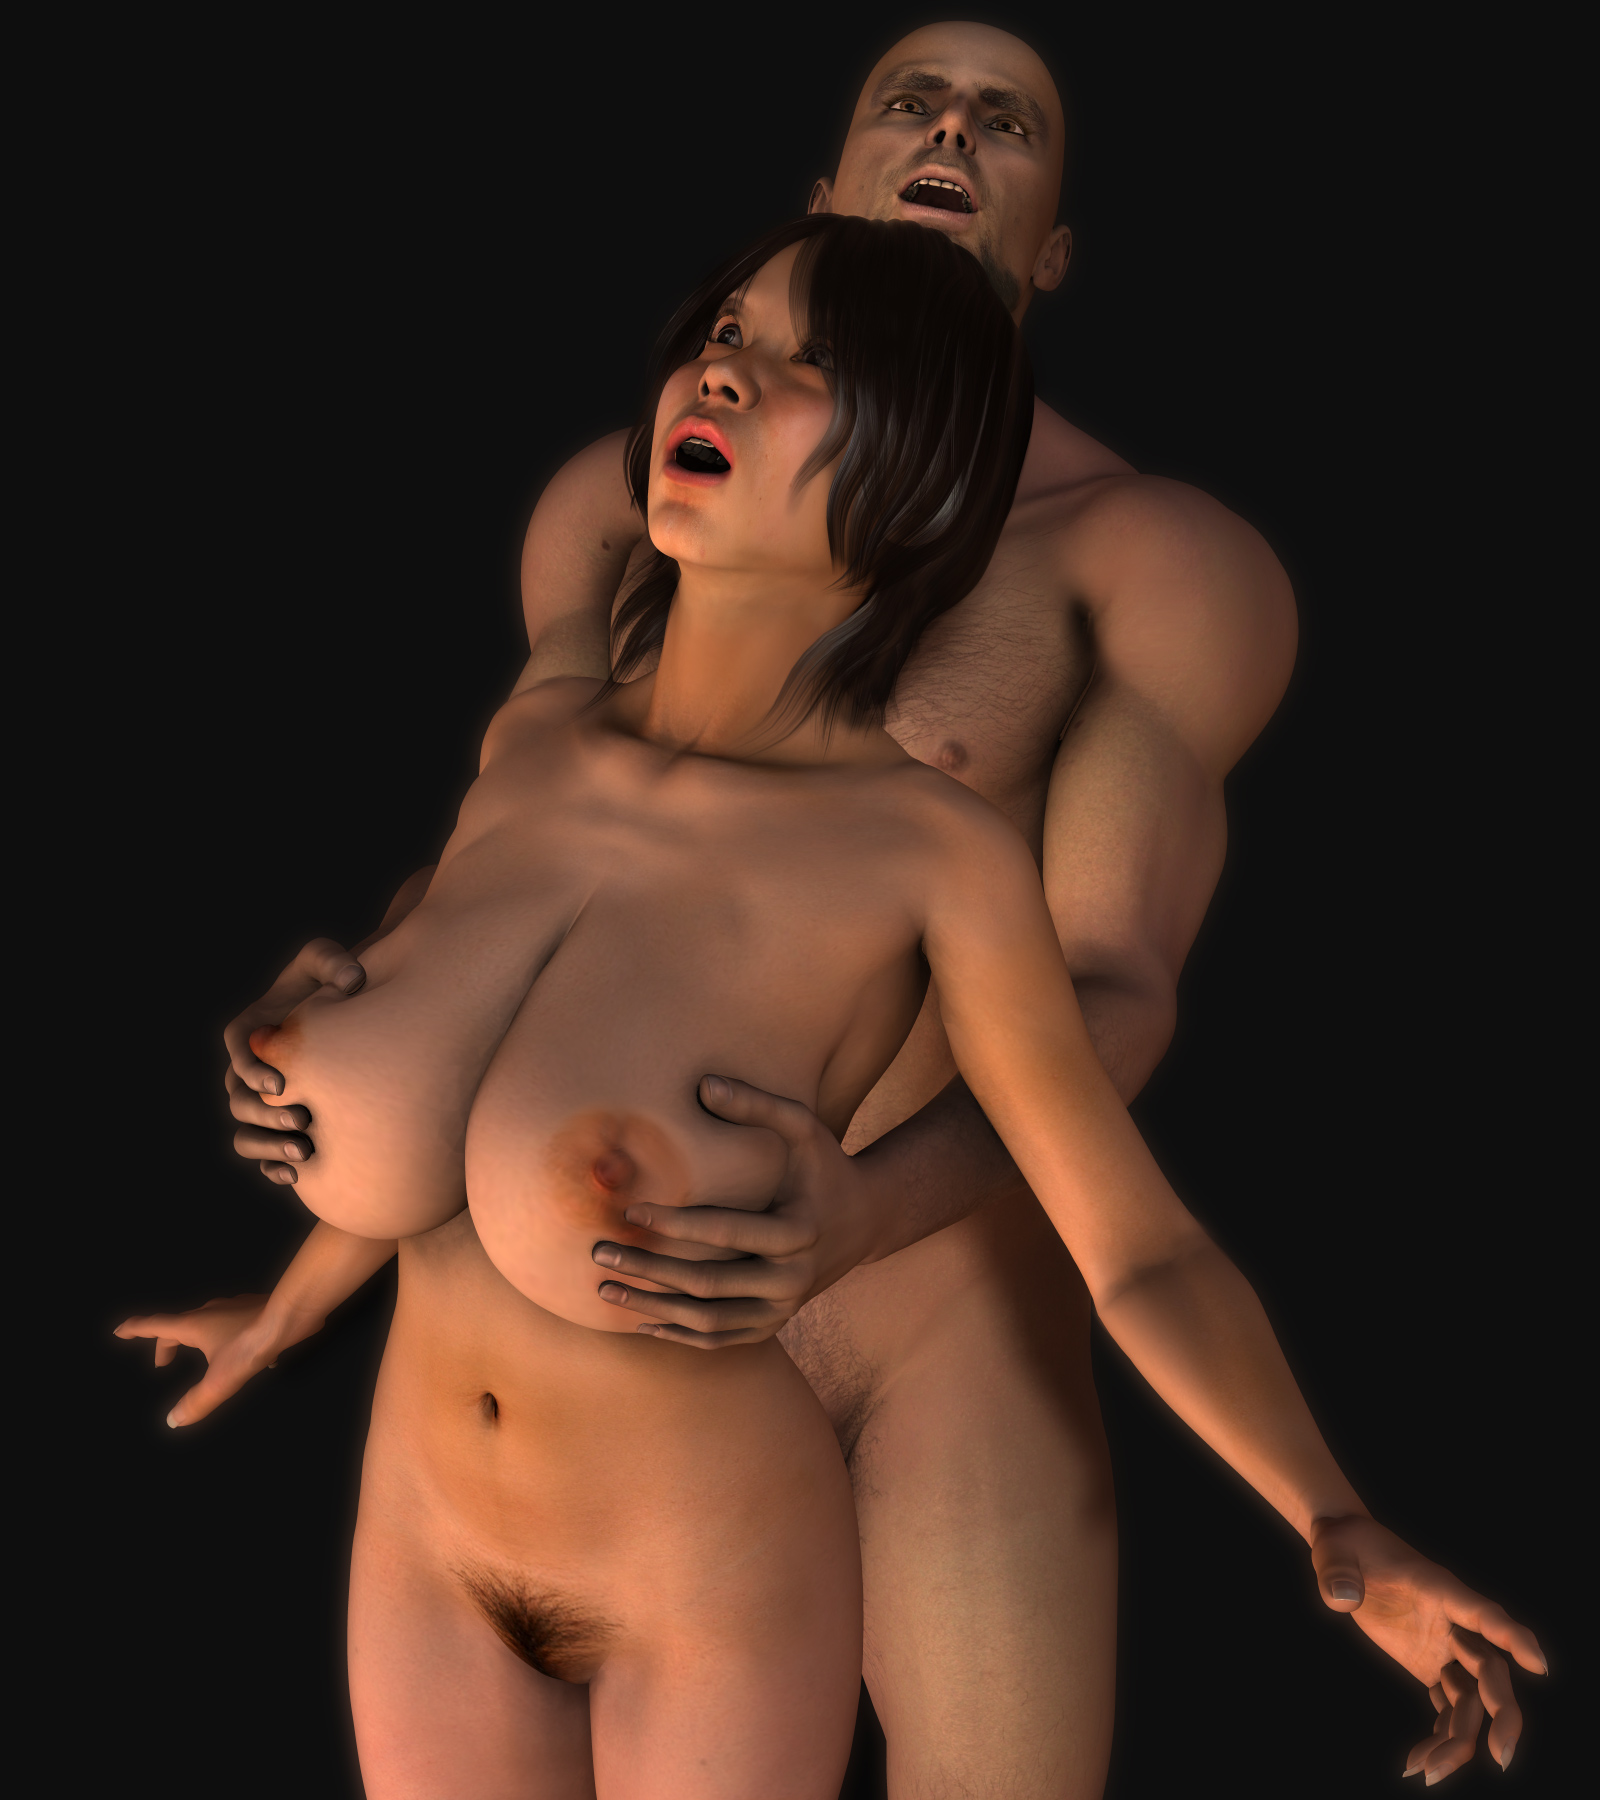 Lineage 2 sex porn photo